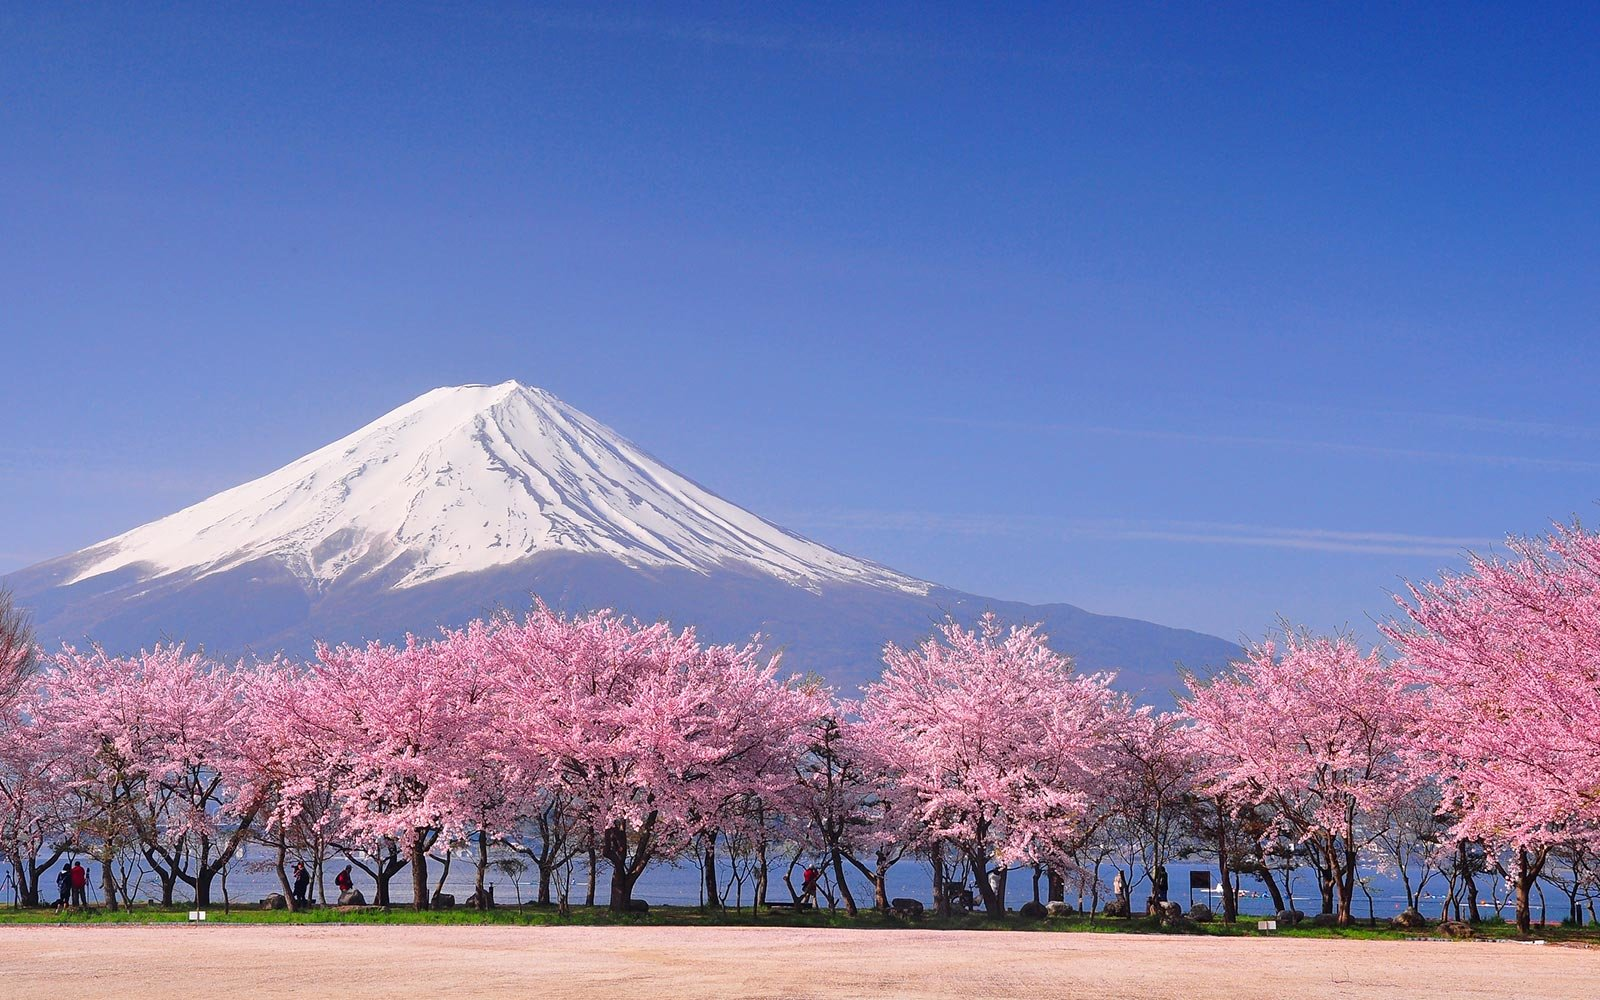 lead-cherry-blossoms-mt-fuji-SPRINGSIGHTS0319.jpg